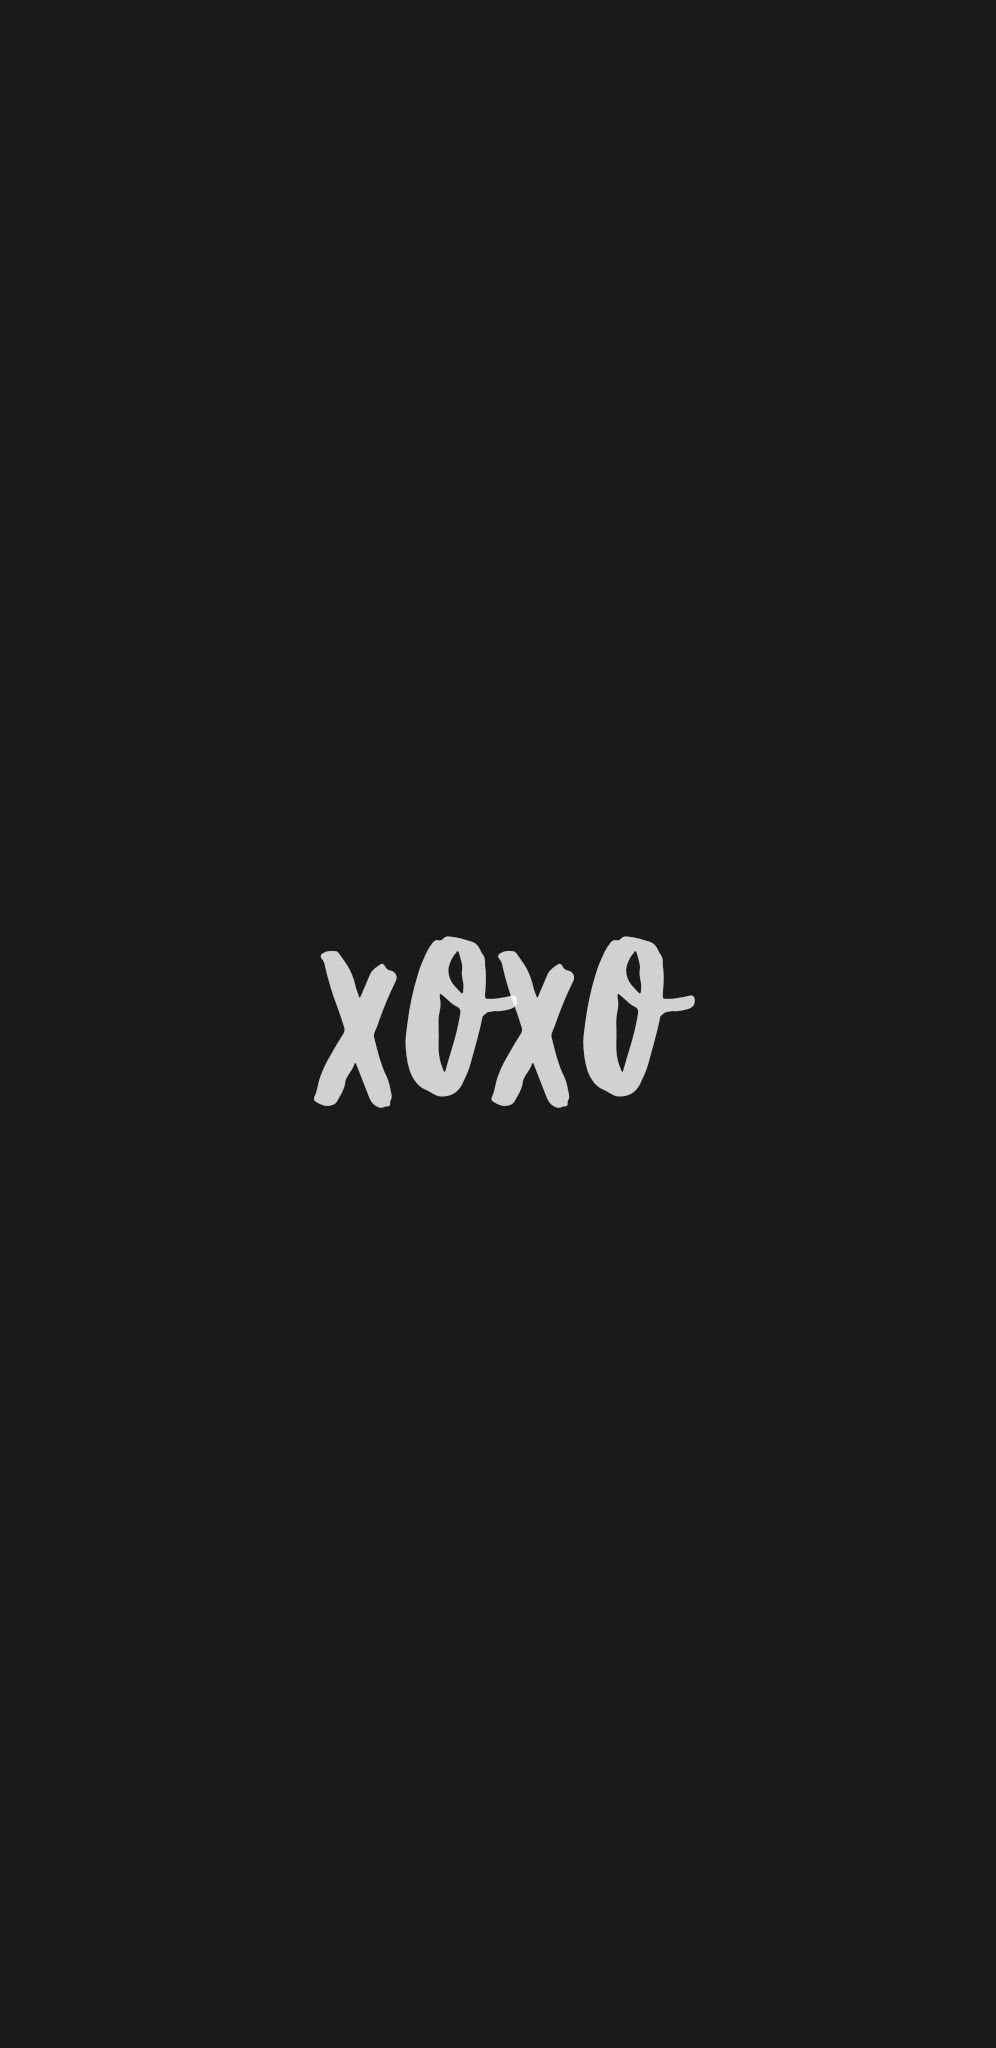 wallpaper hd minimal black white iphone android phone smartphone background xoxo